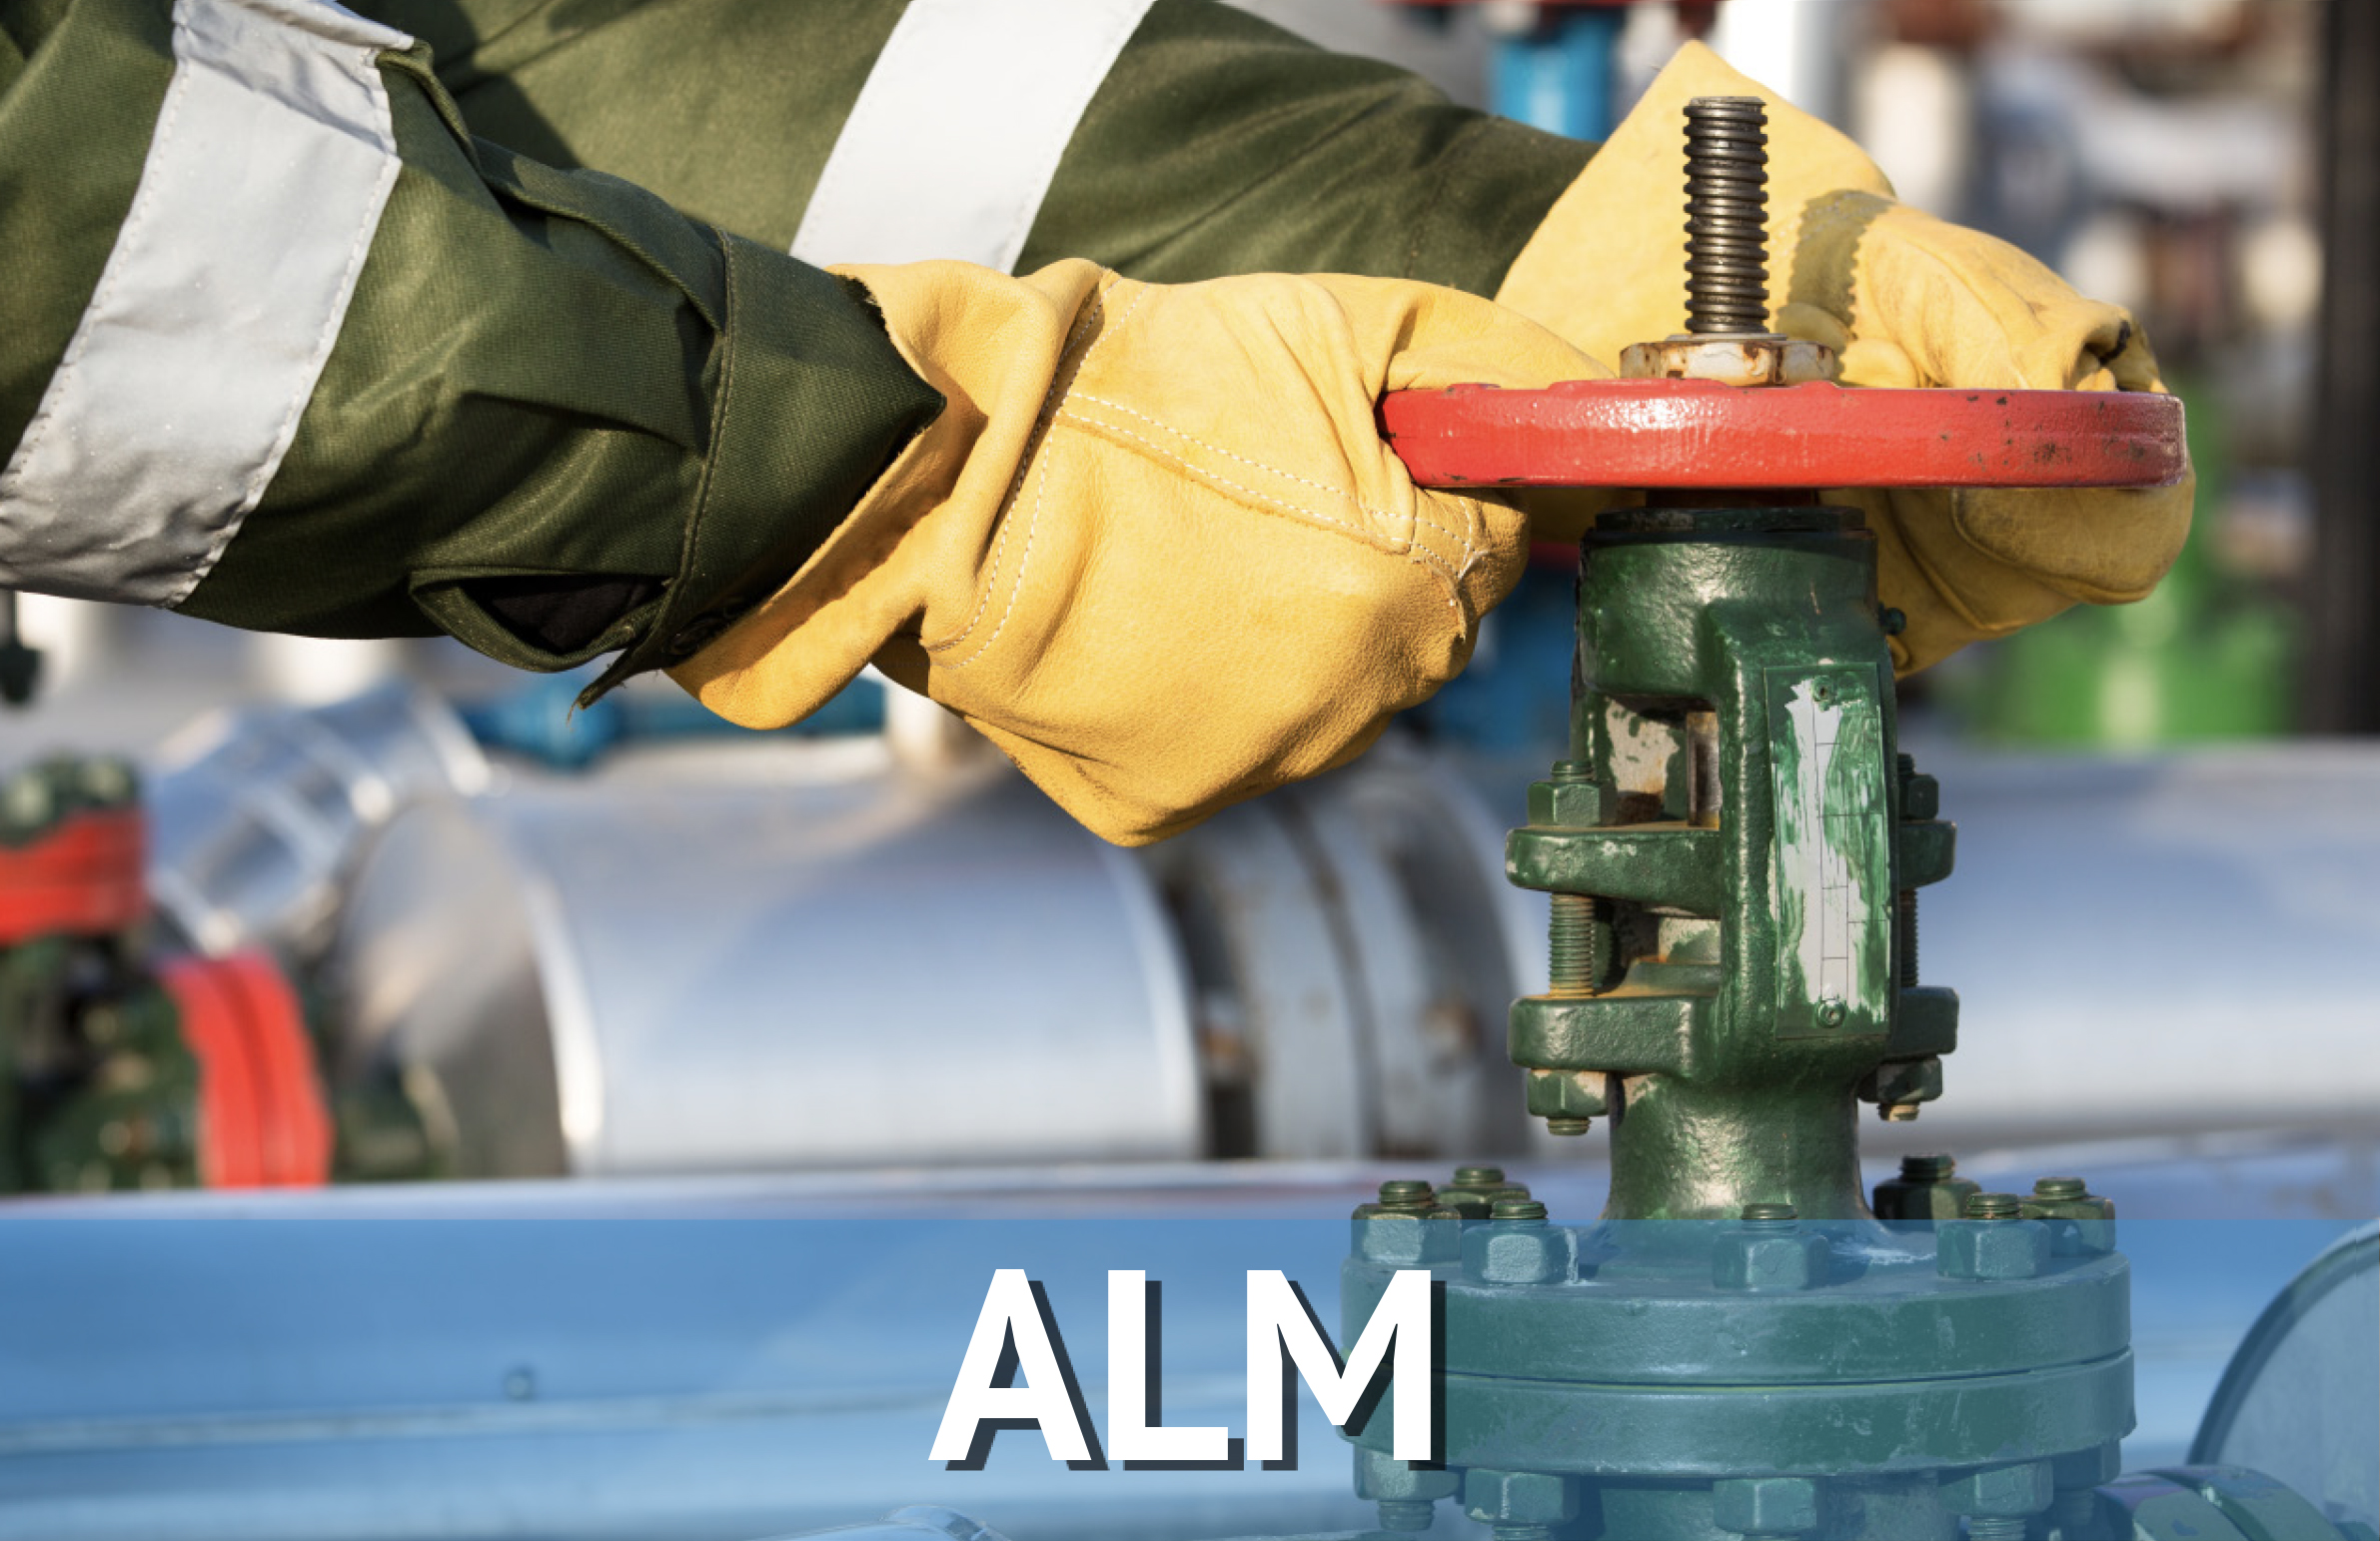 Hands Turning an Industrial Valve, Labeled ALM